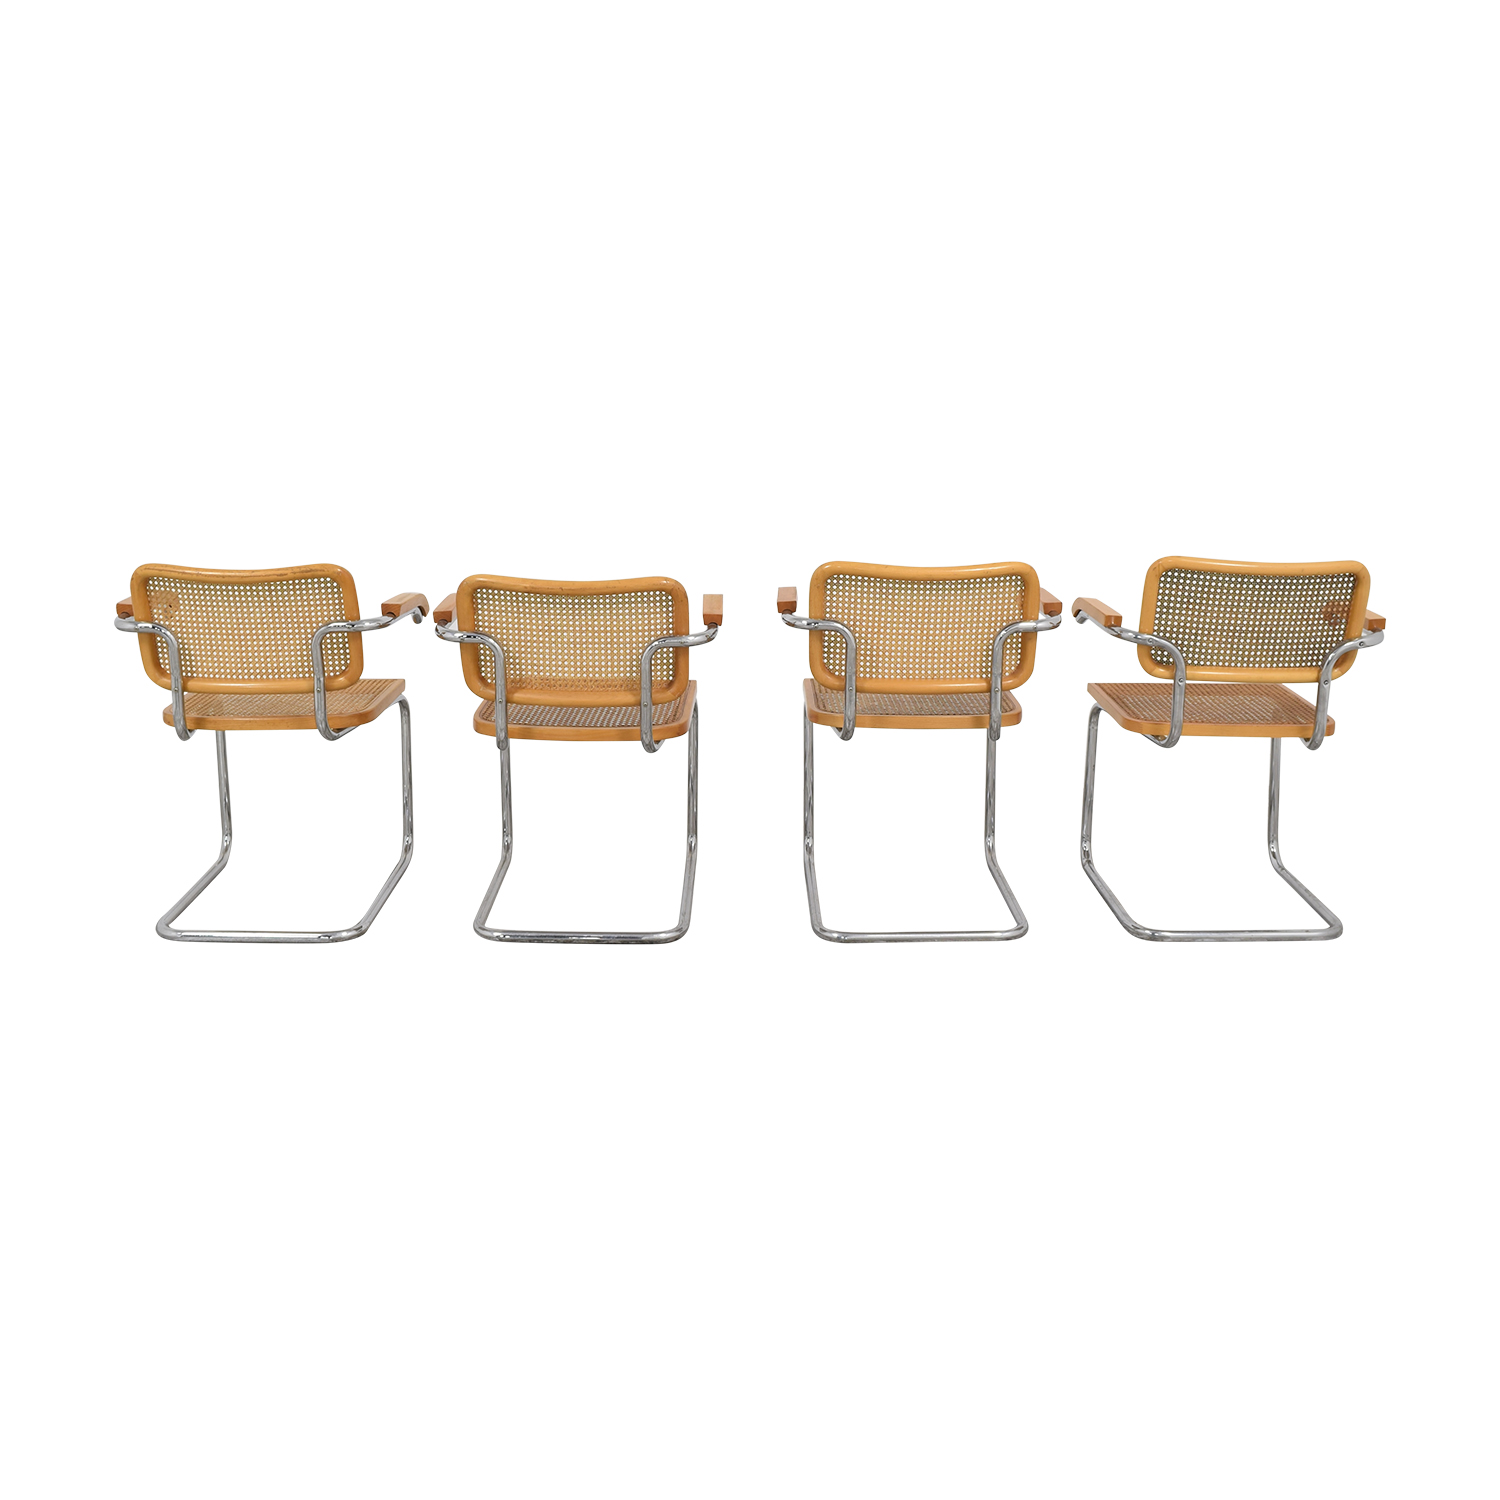 Scandinavian Designs Scandinavian Designs Bendt Dining Arm Chairs coupon